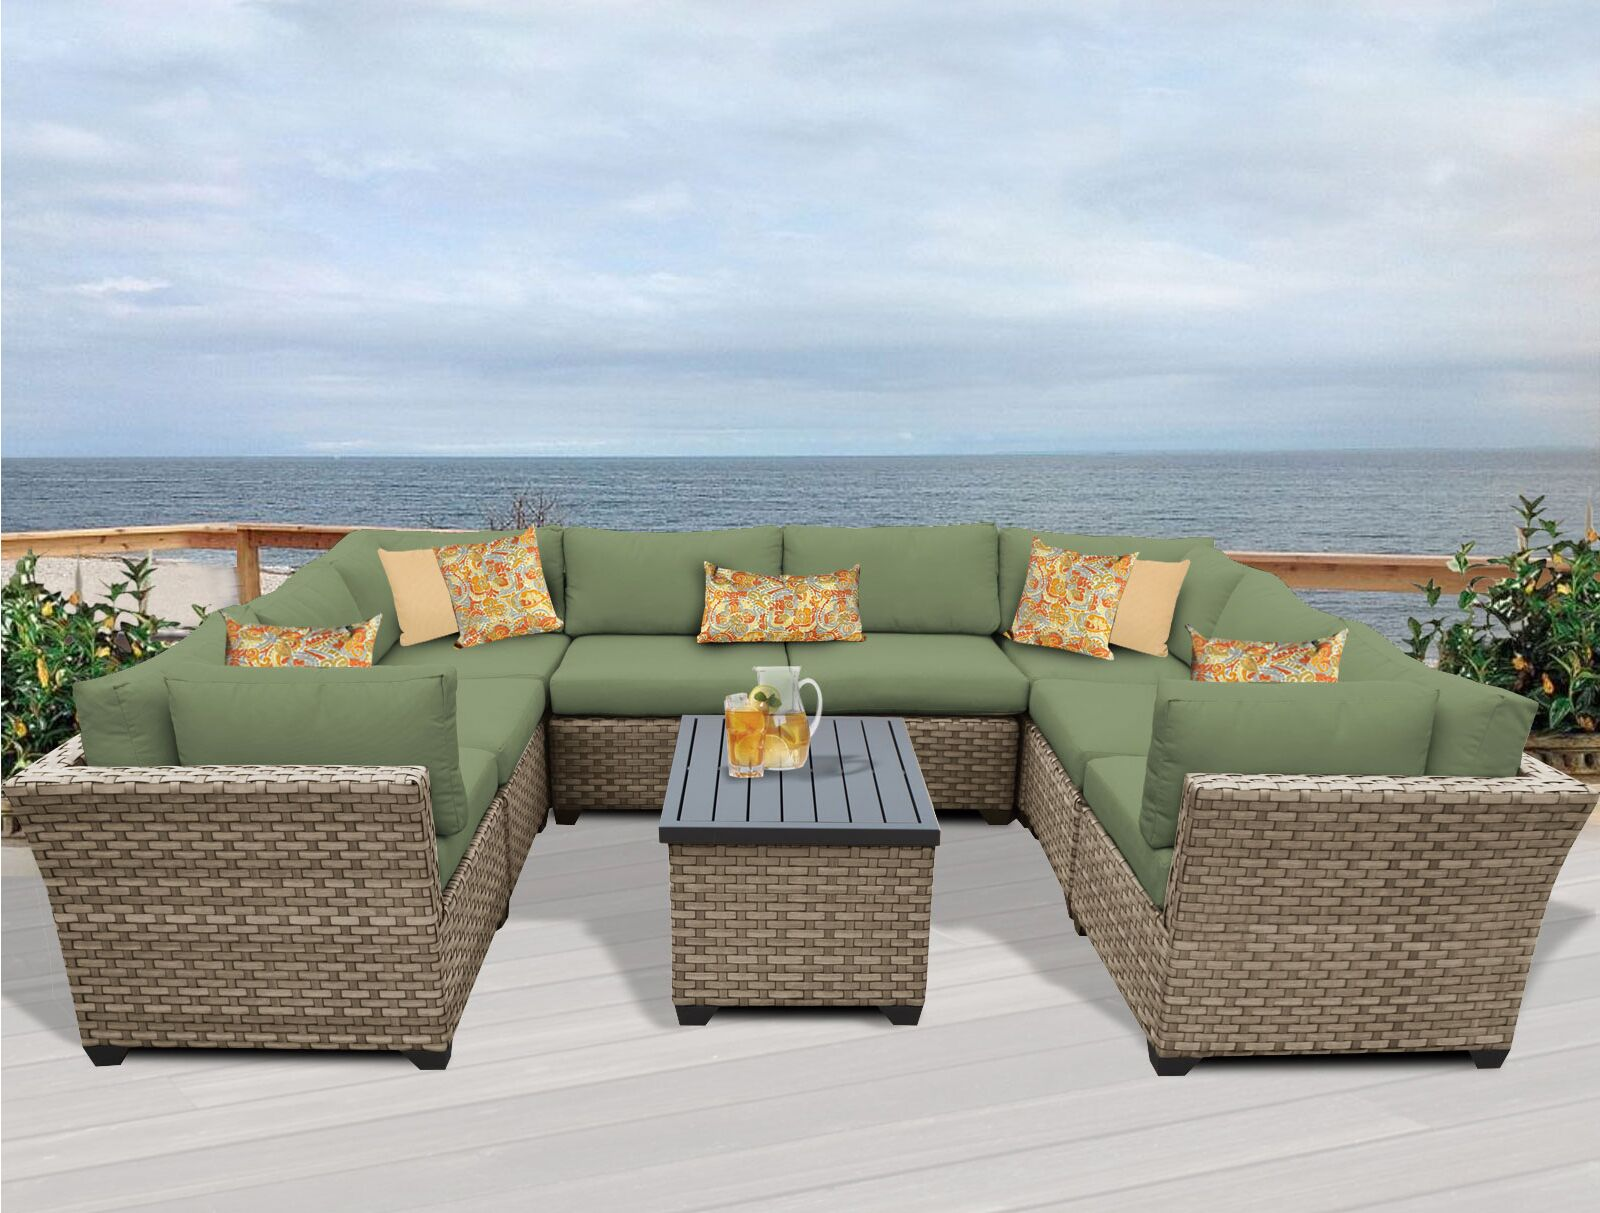 Monterey 9 Piece Sectional Set with Cushions Fabric: Cilantro